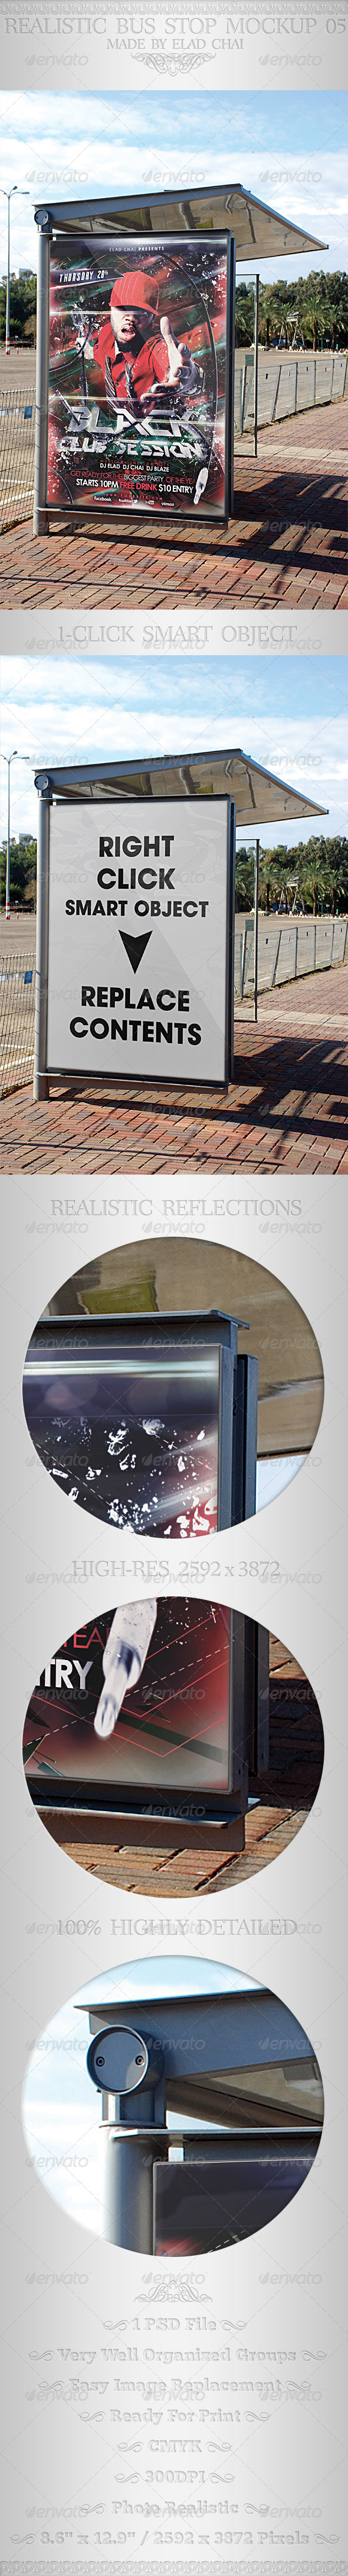 GraphicRiver Realistic Bus Stop Flyer Poster Mockup 05 4784513